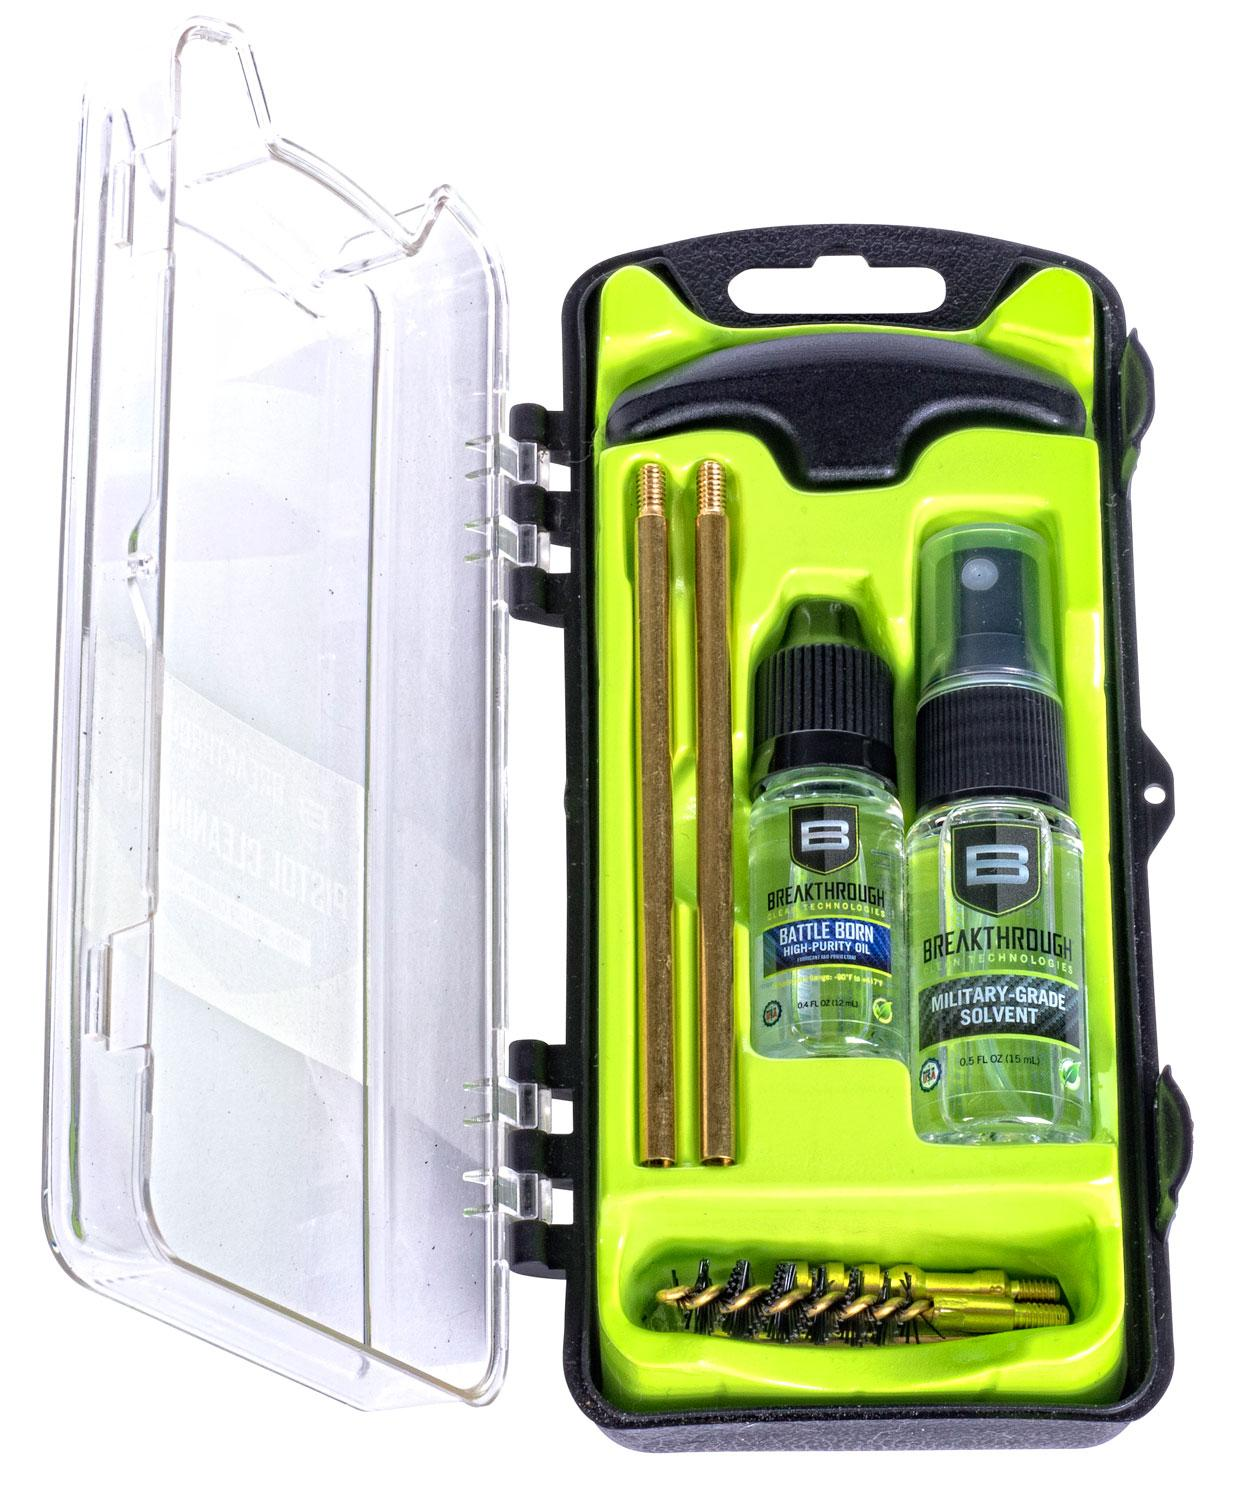 Breakthrough Clean Btecc Vision Series Pistol Cleaning Kit 9mm/38/357 Cal